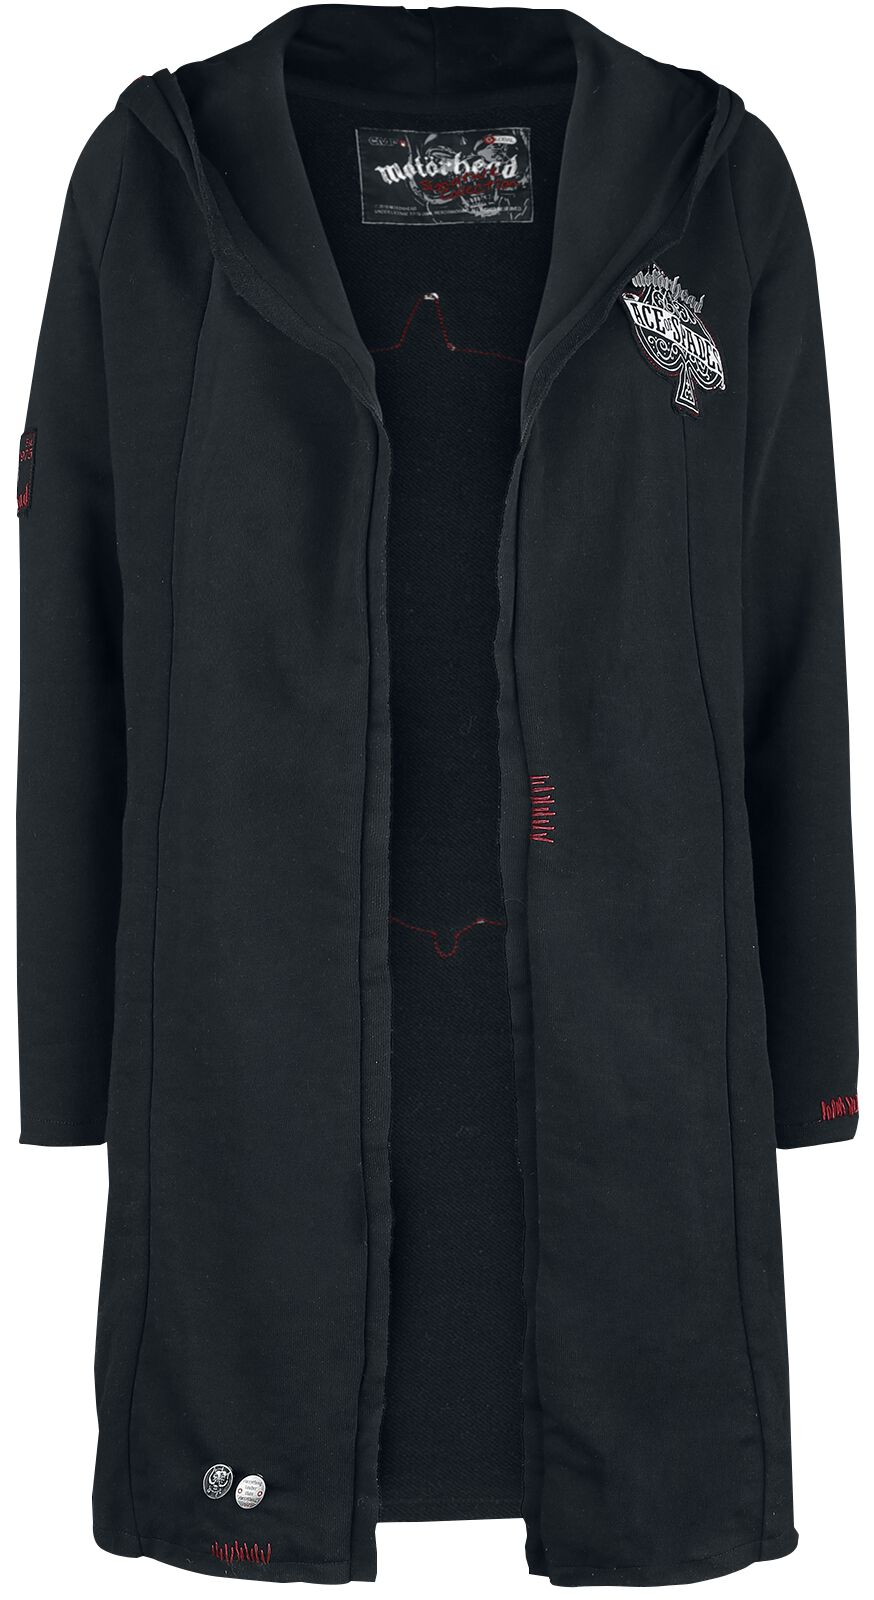 Image of   Motörhead EMP Signature Collection Pigecardigan sort